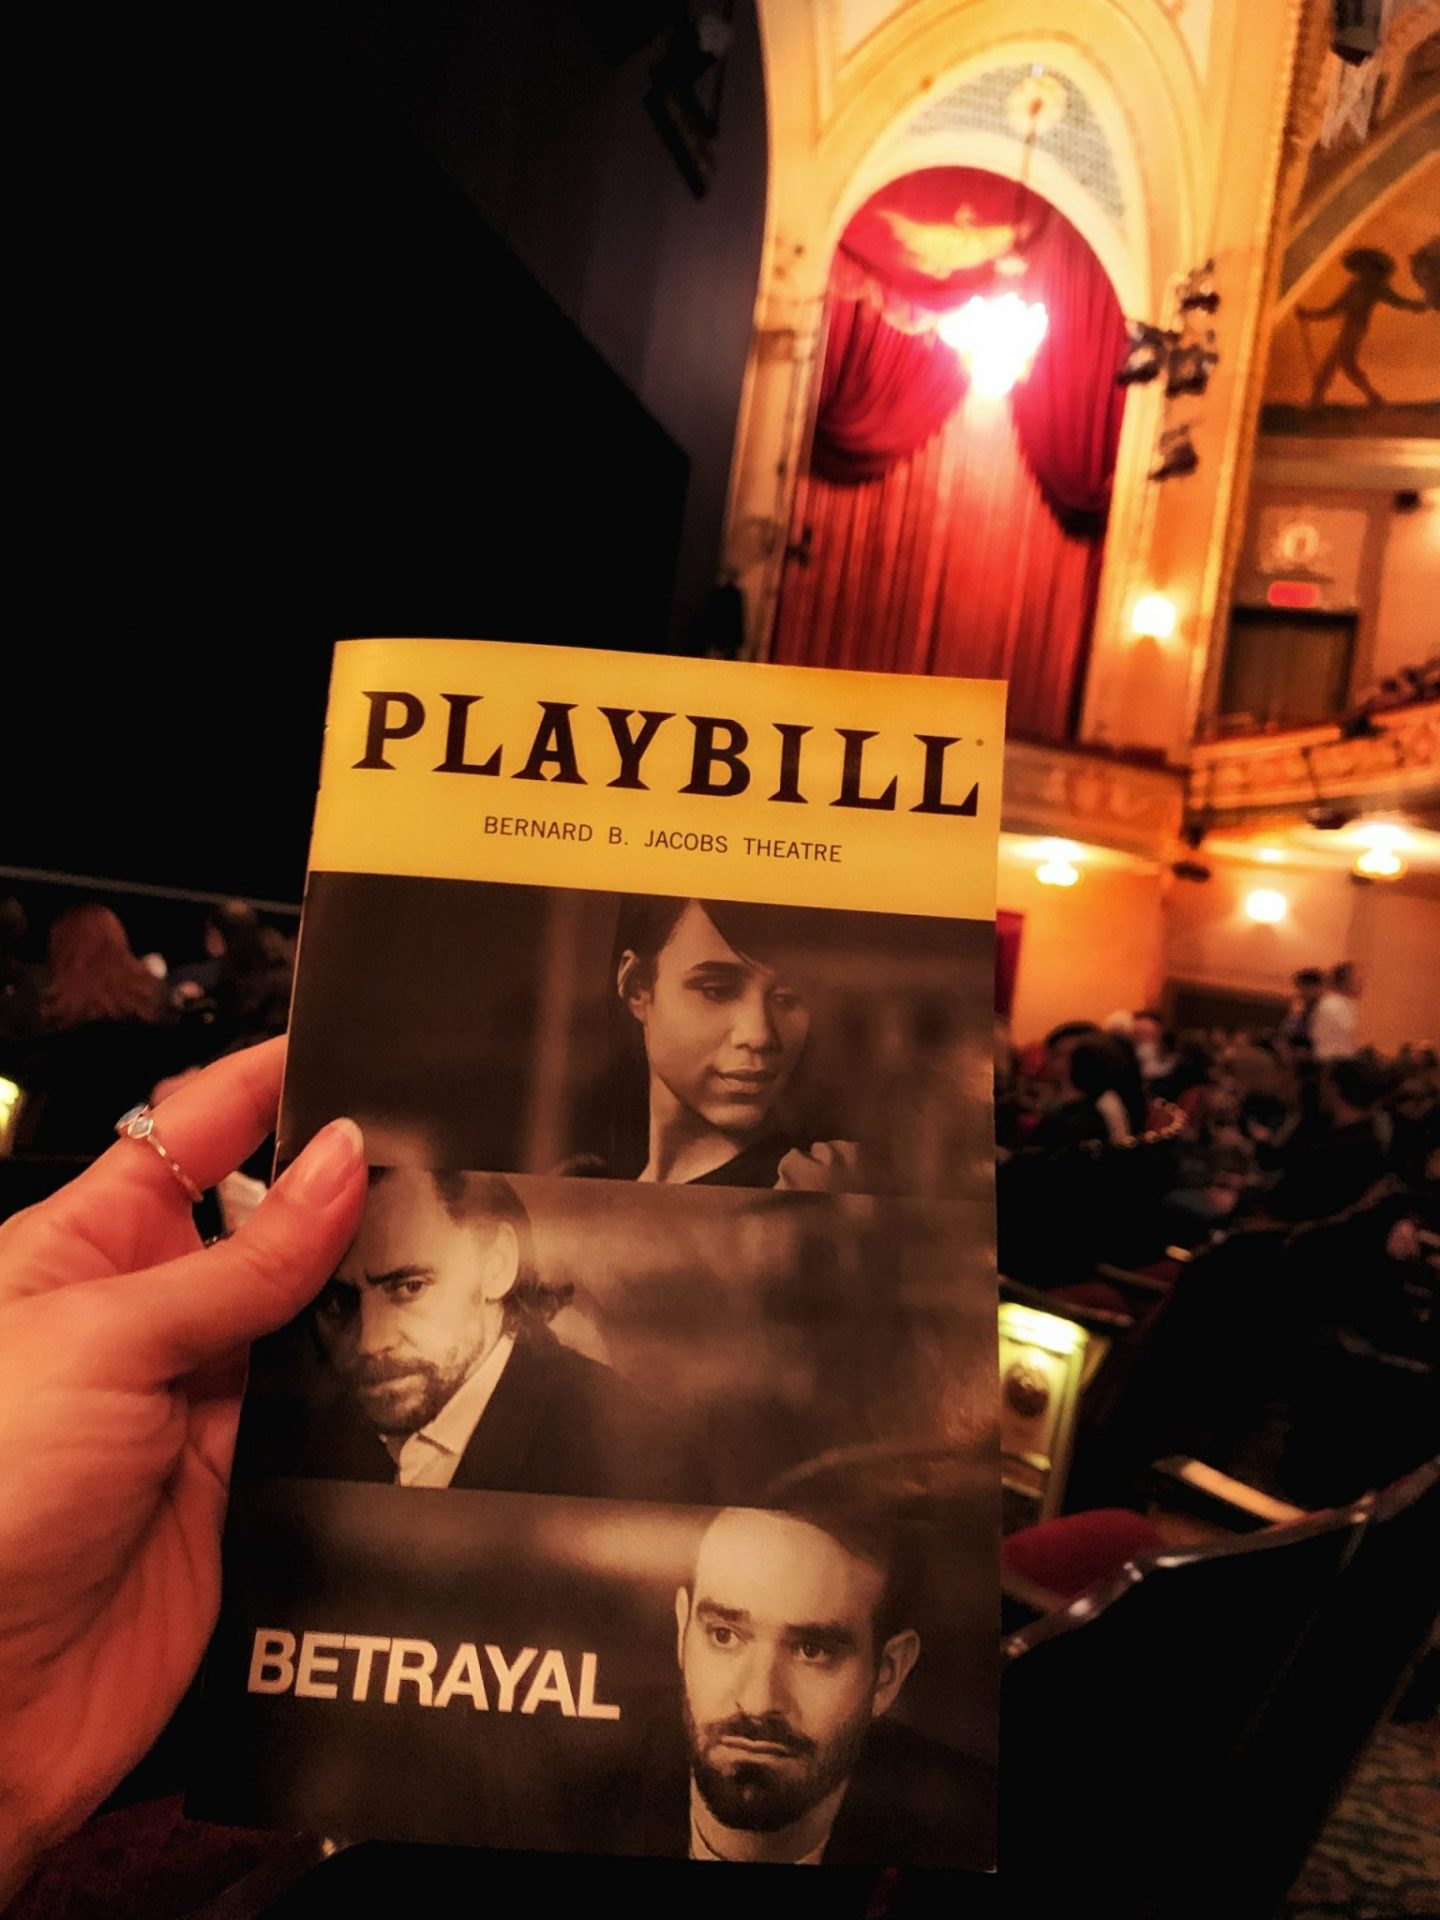 Playbill for Betrayal